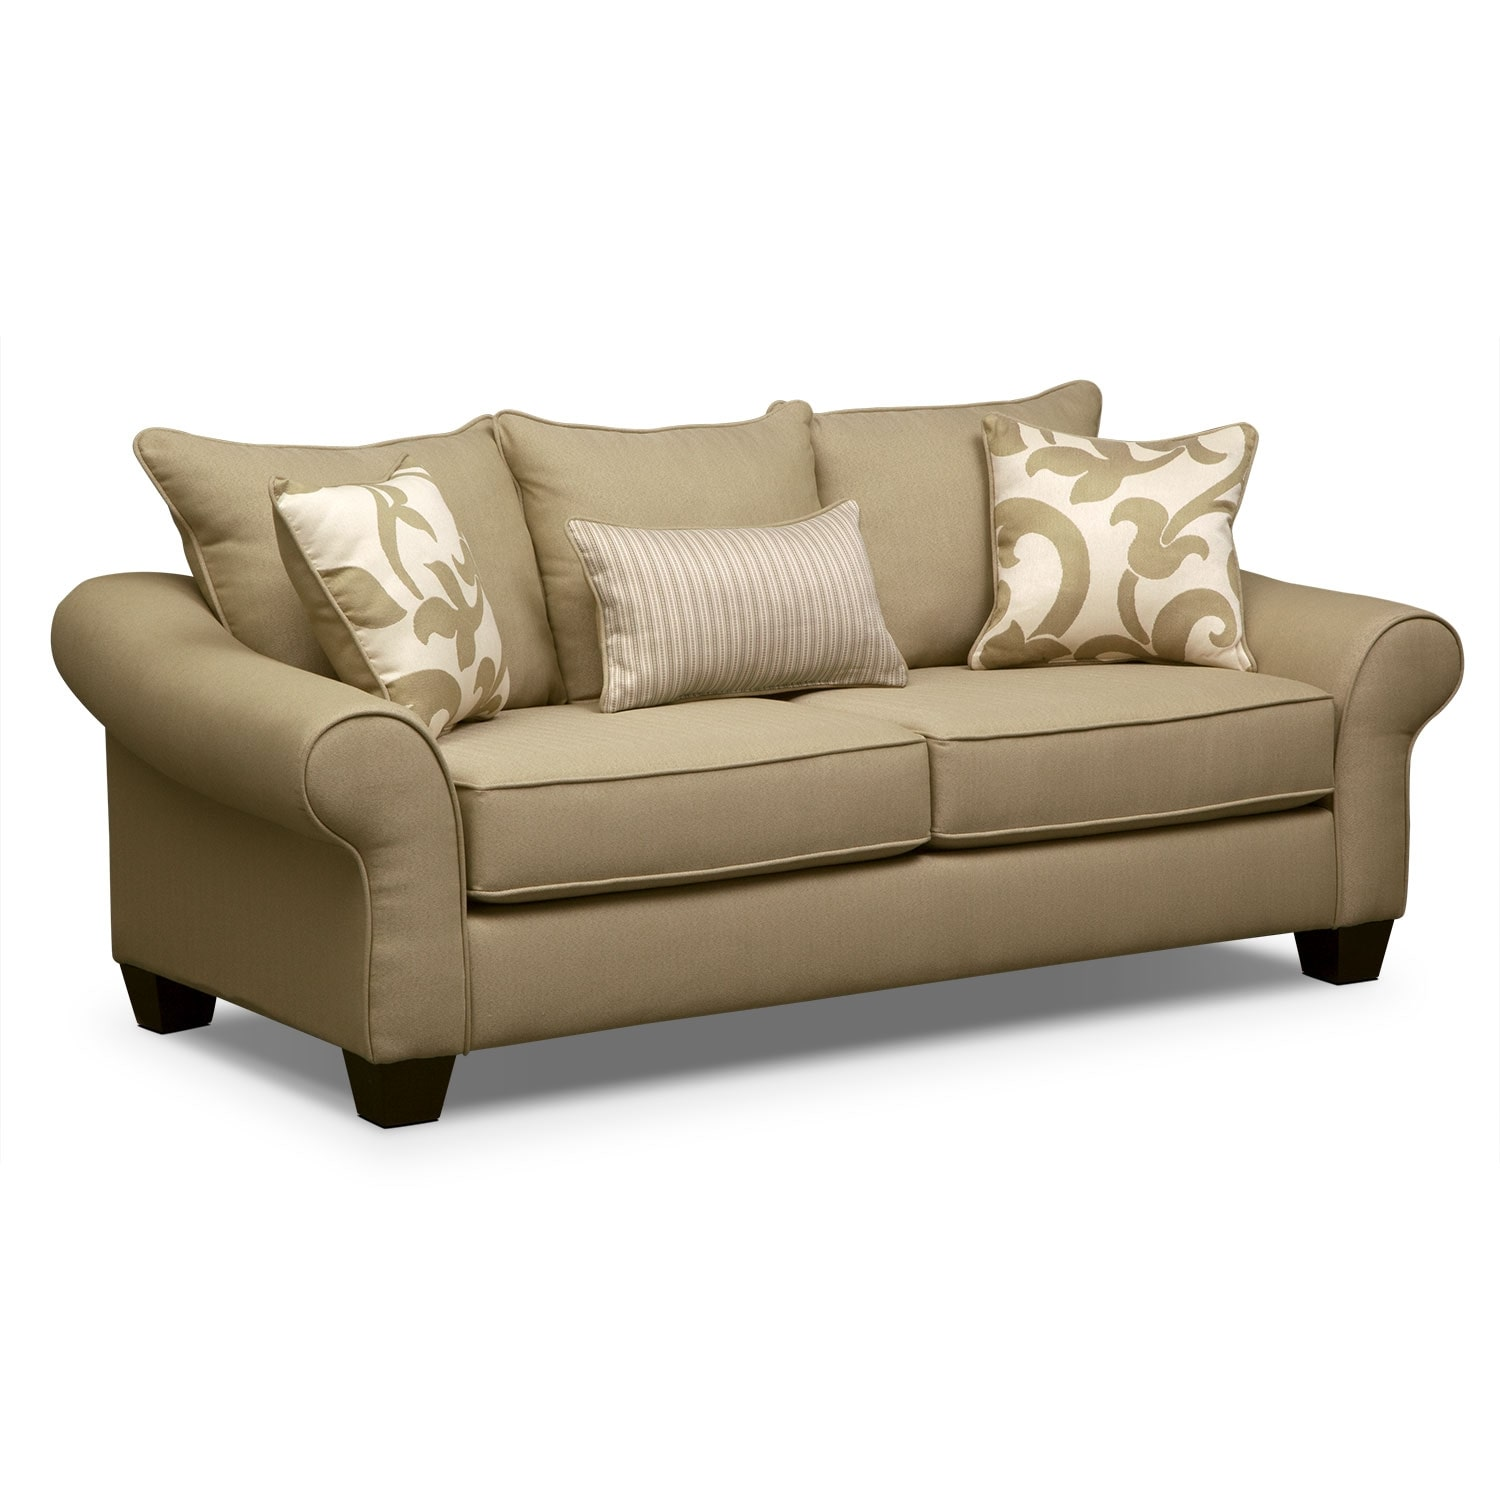 colette sofa khaki value city furniture. Black Bedroom Furniture Sets. Home Design Ideas